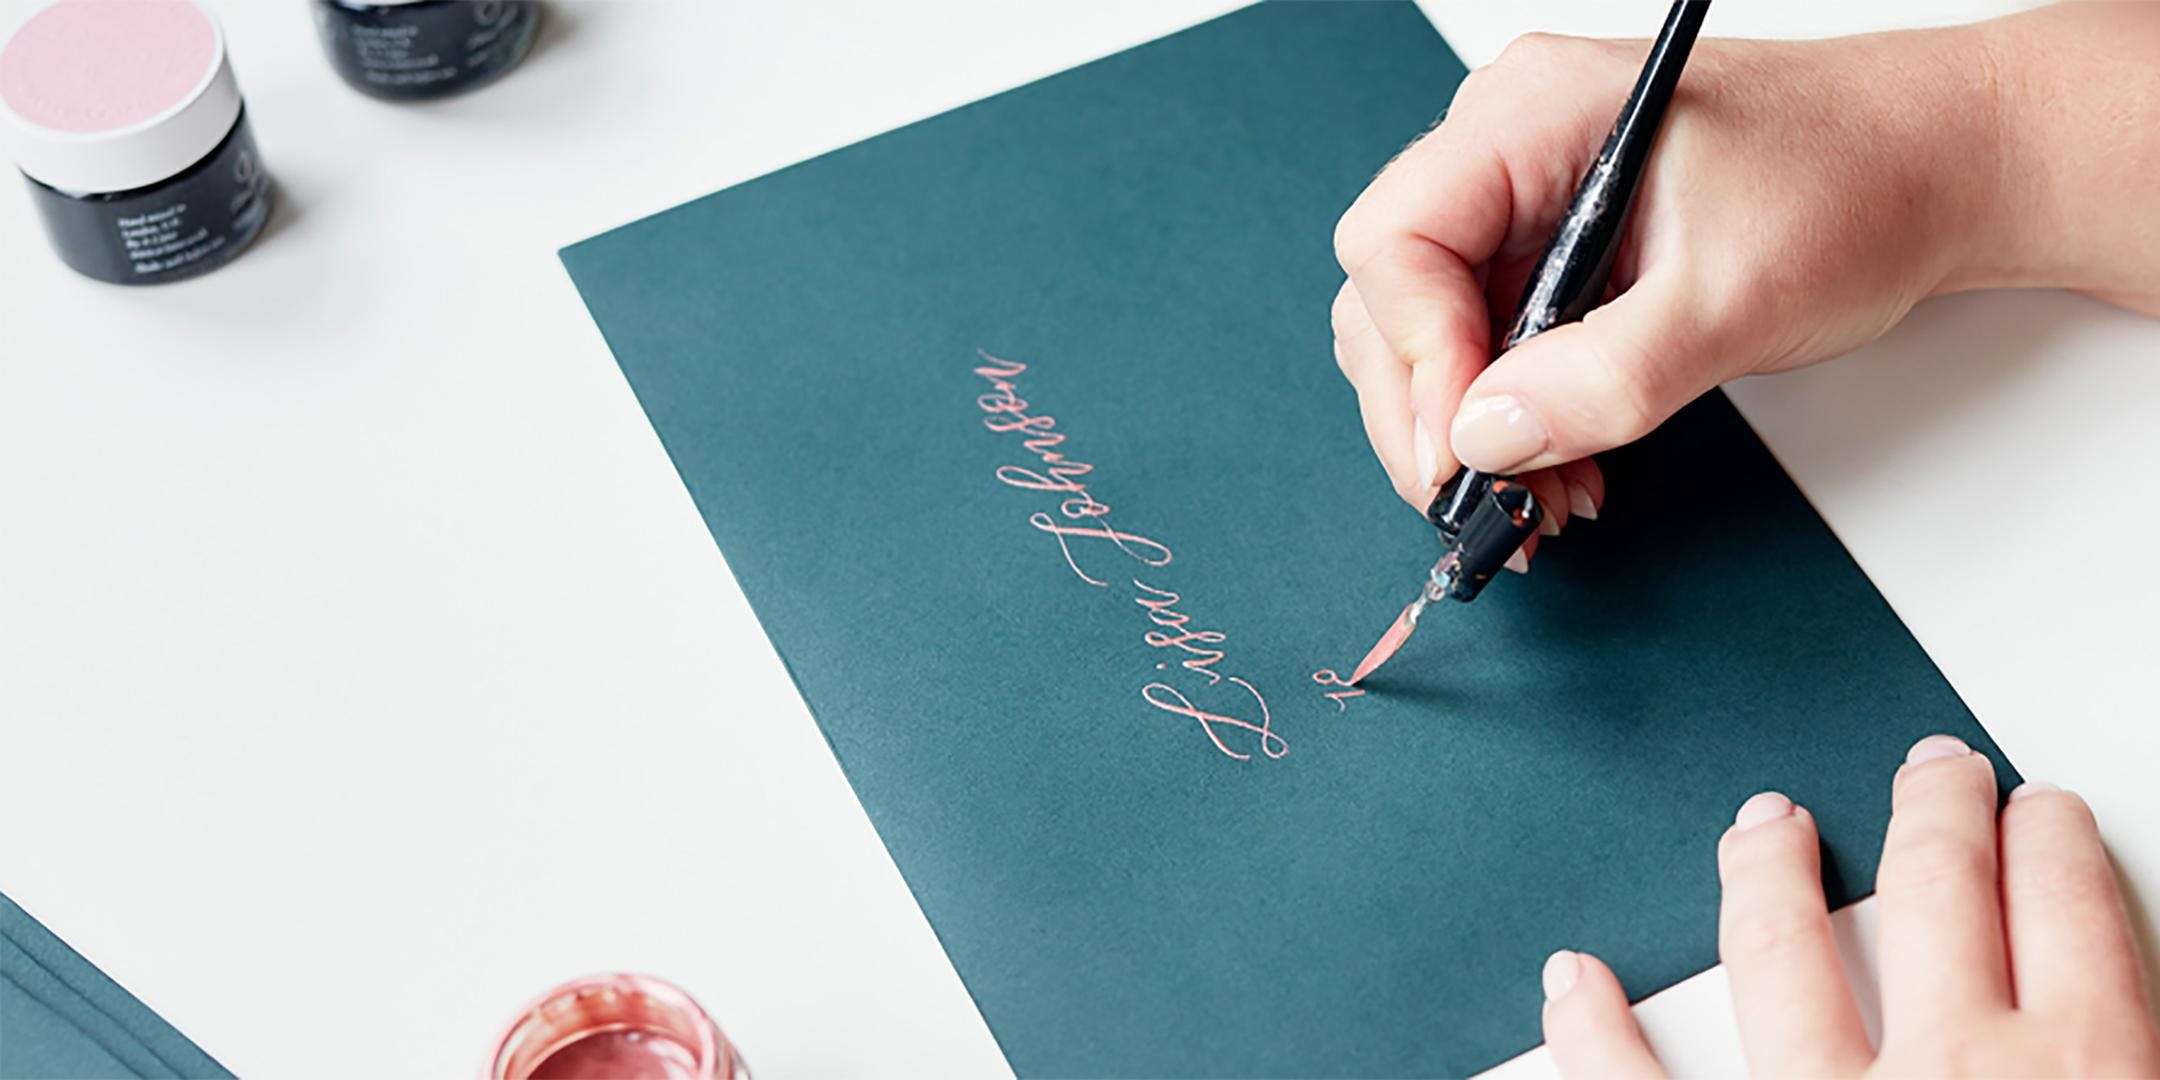 The Art of Letter Writing  - Calligraphy Workshop